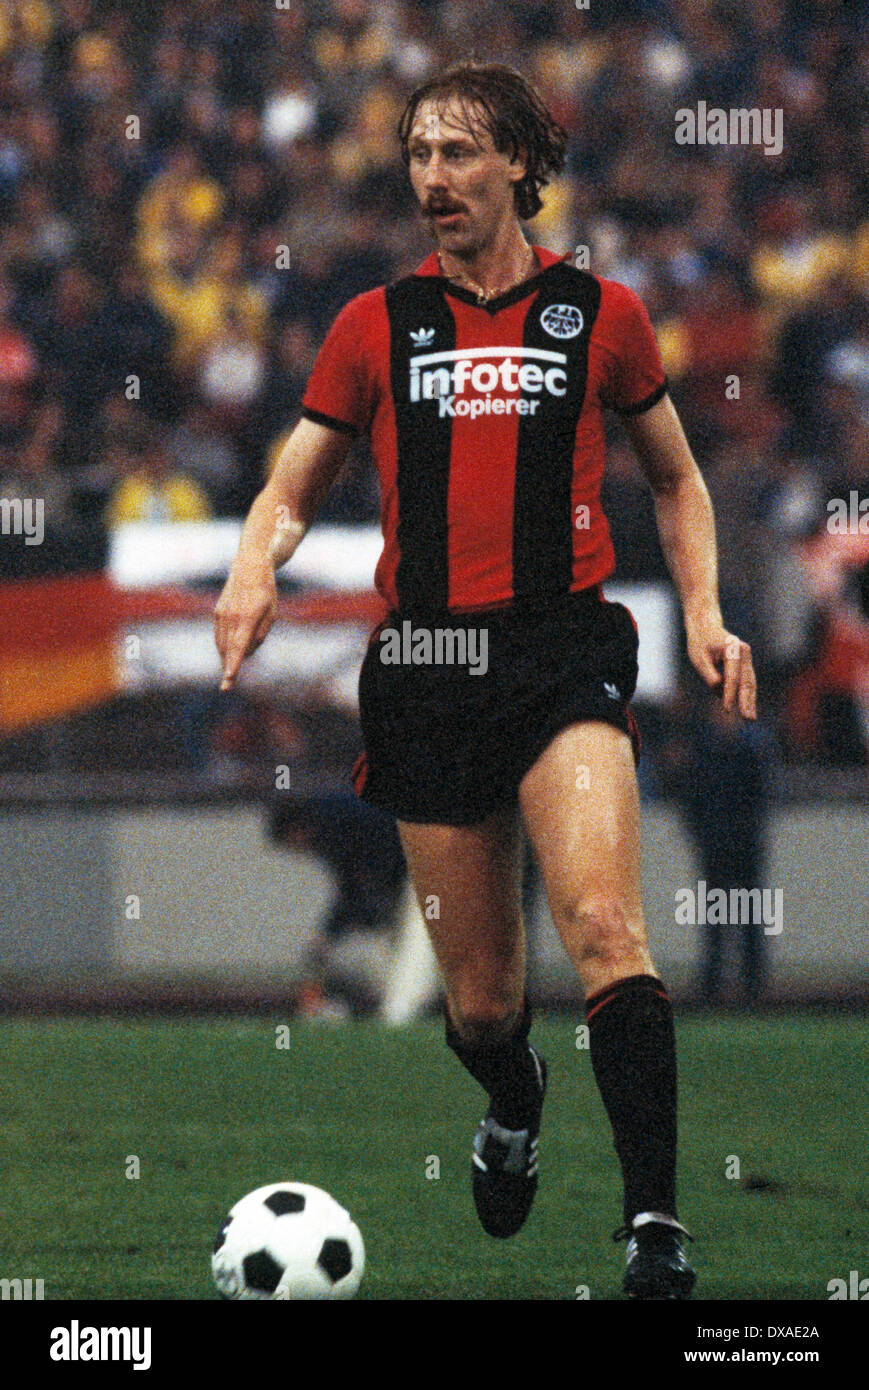 football, 1. Bundesliga, 2. Bundesliga, 1983/1984, relegation match to Bundesliga 1984/1985, first leg, Wedau Stadium, MSV Duisburg versus Eintracht Frankfurt 0:5, scene of the match, Juergen Mohr (Frankfurt) in ball possession - Stock Image